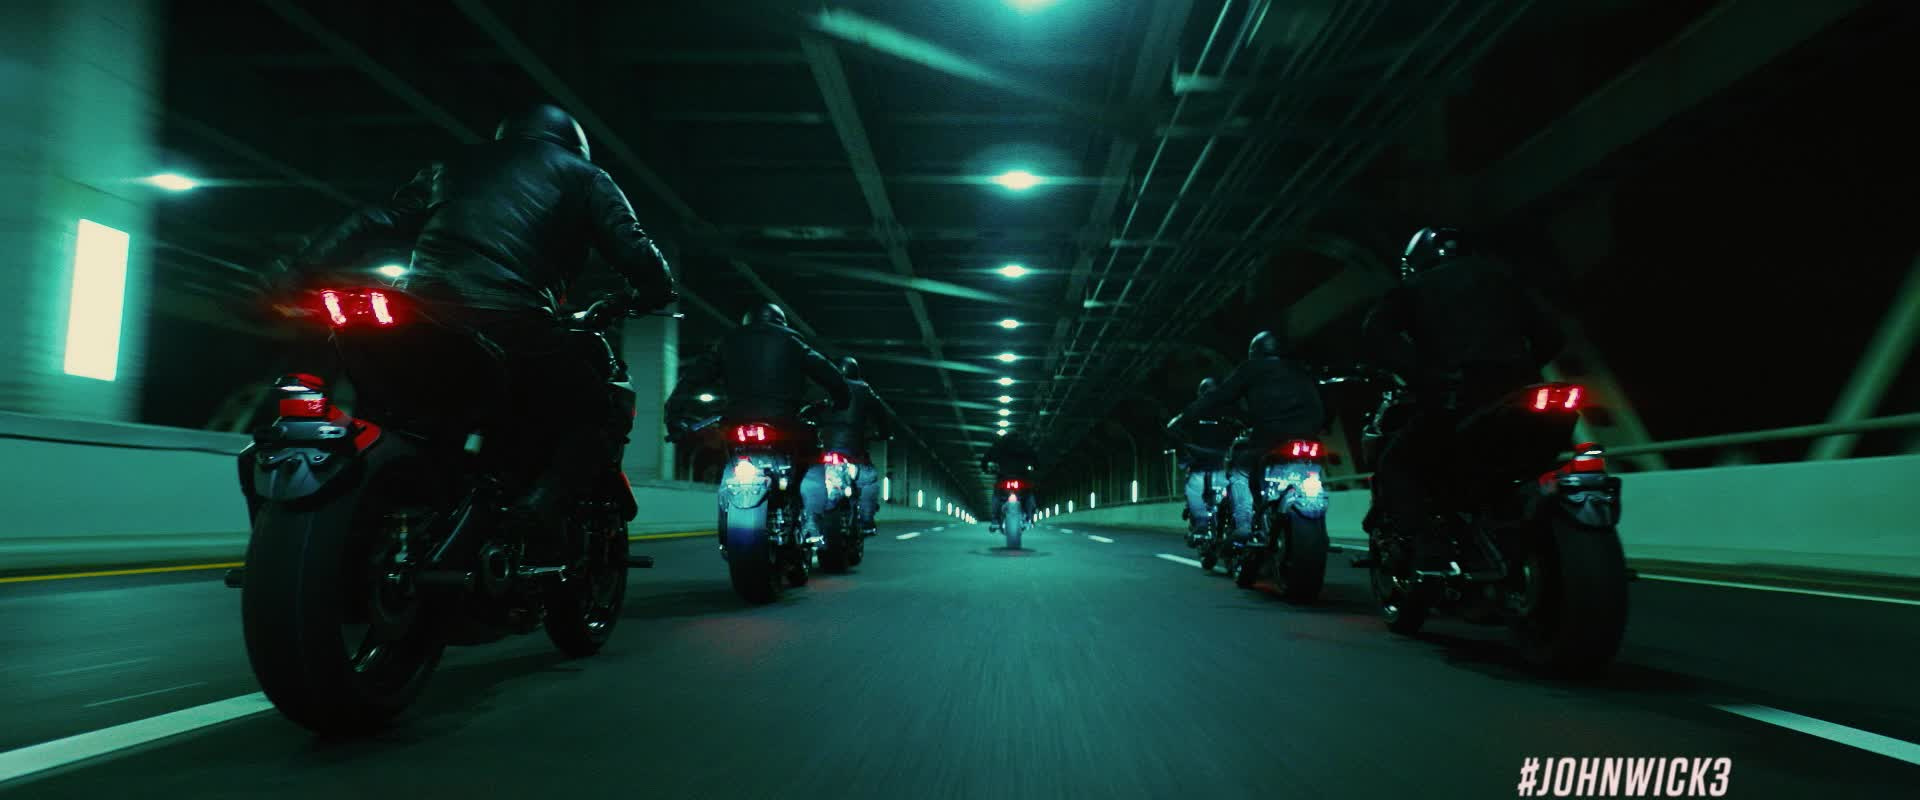 chase, crash, fight, john wick, john wick 3, john wick chapter 3, john wick chapter 3 parabellum, keanu reeves, motorcycle, sword, John Wick Motorcycle Chase Sword Crash GIFs